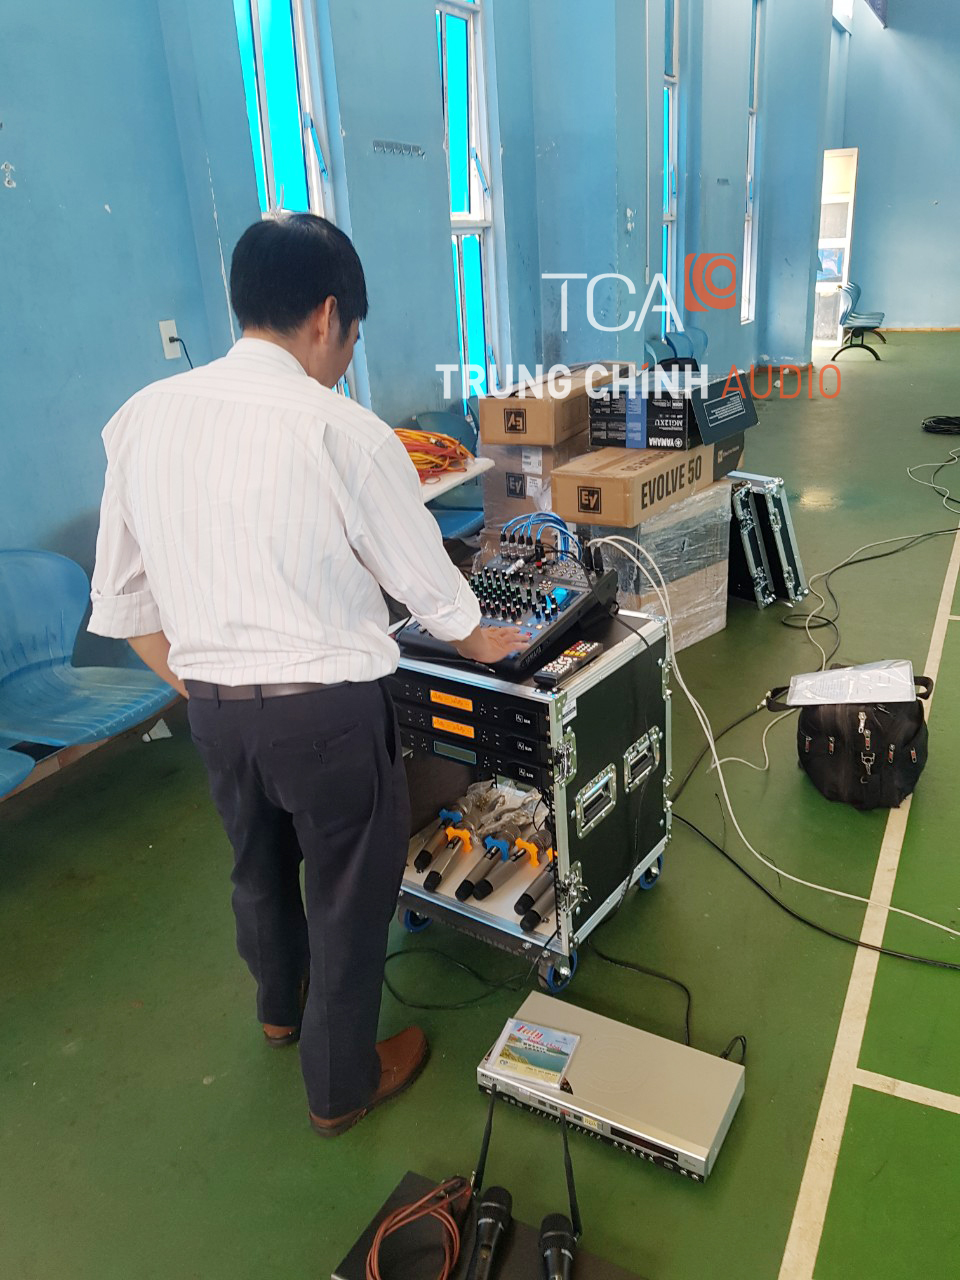 tca-lap-dat-am-thanh-he-thong-thuy-dien-ialy-004